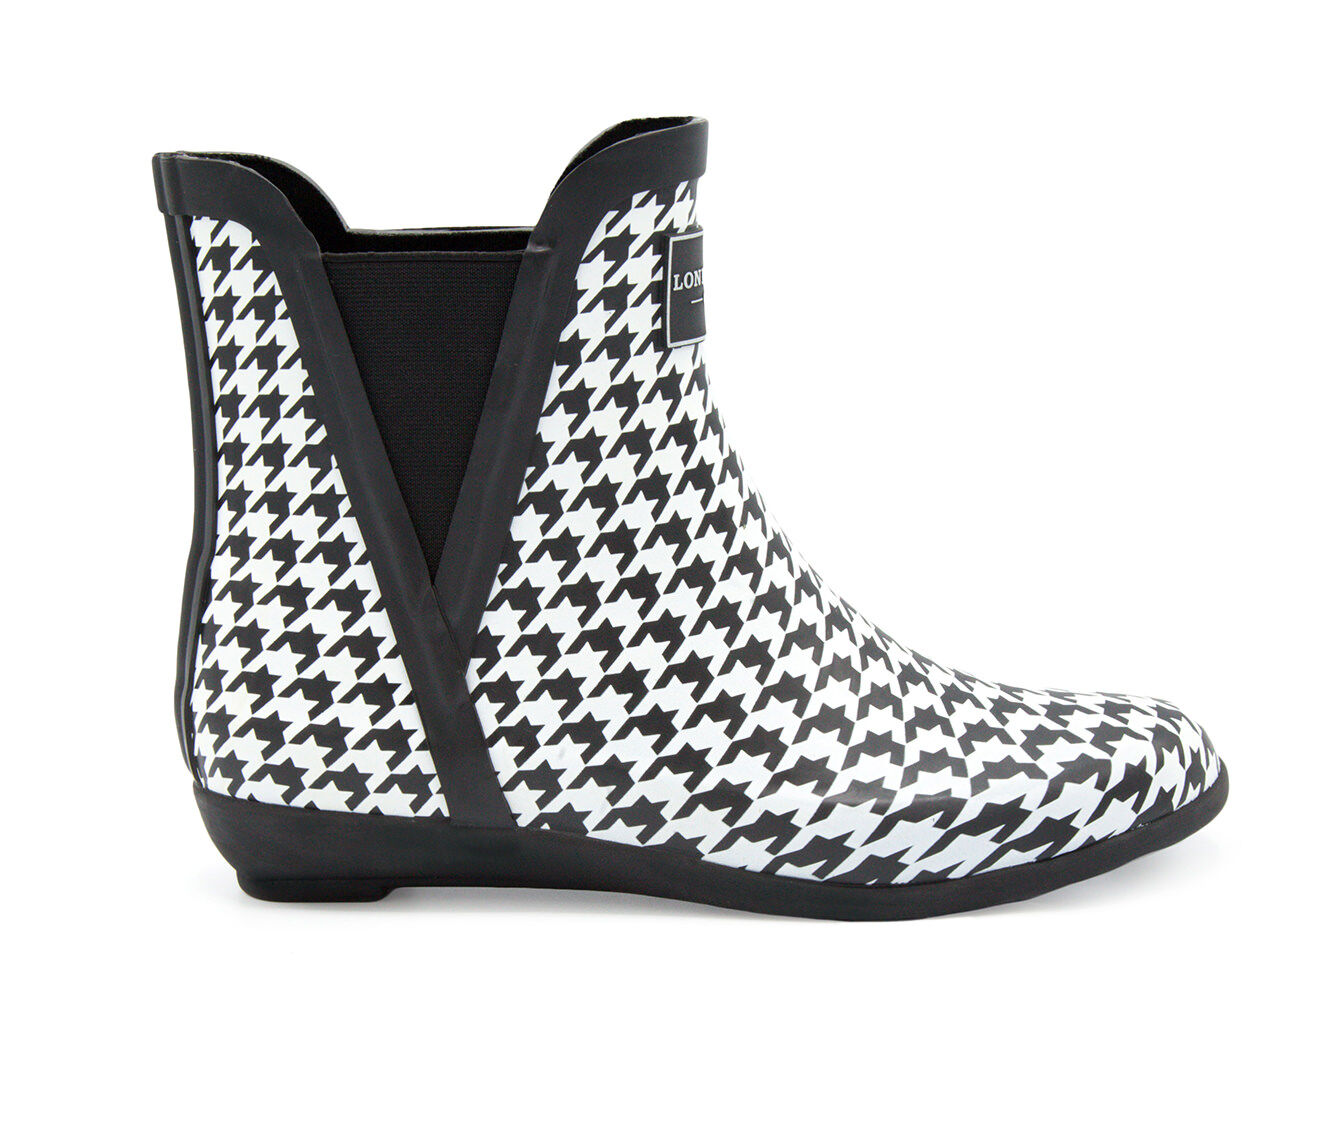 purchase export Women's London Fog Piccadilly Rain Boots Houndstooth